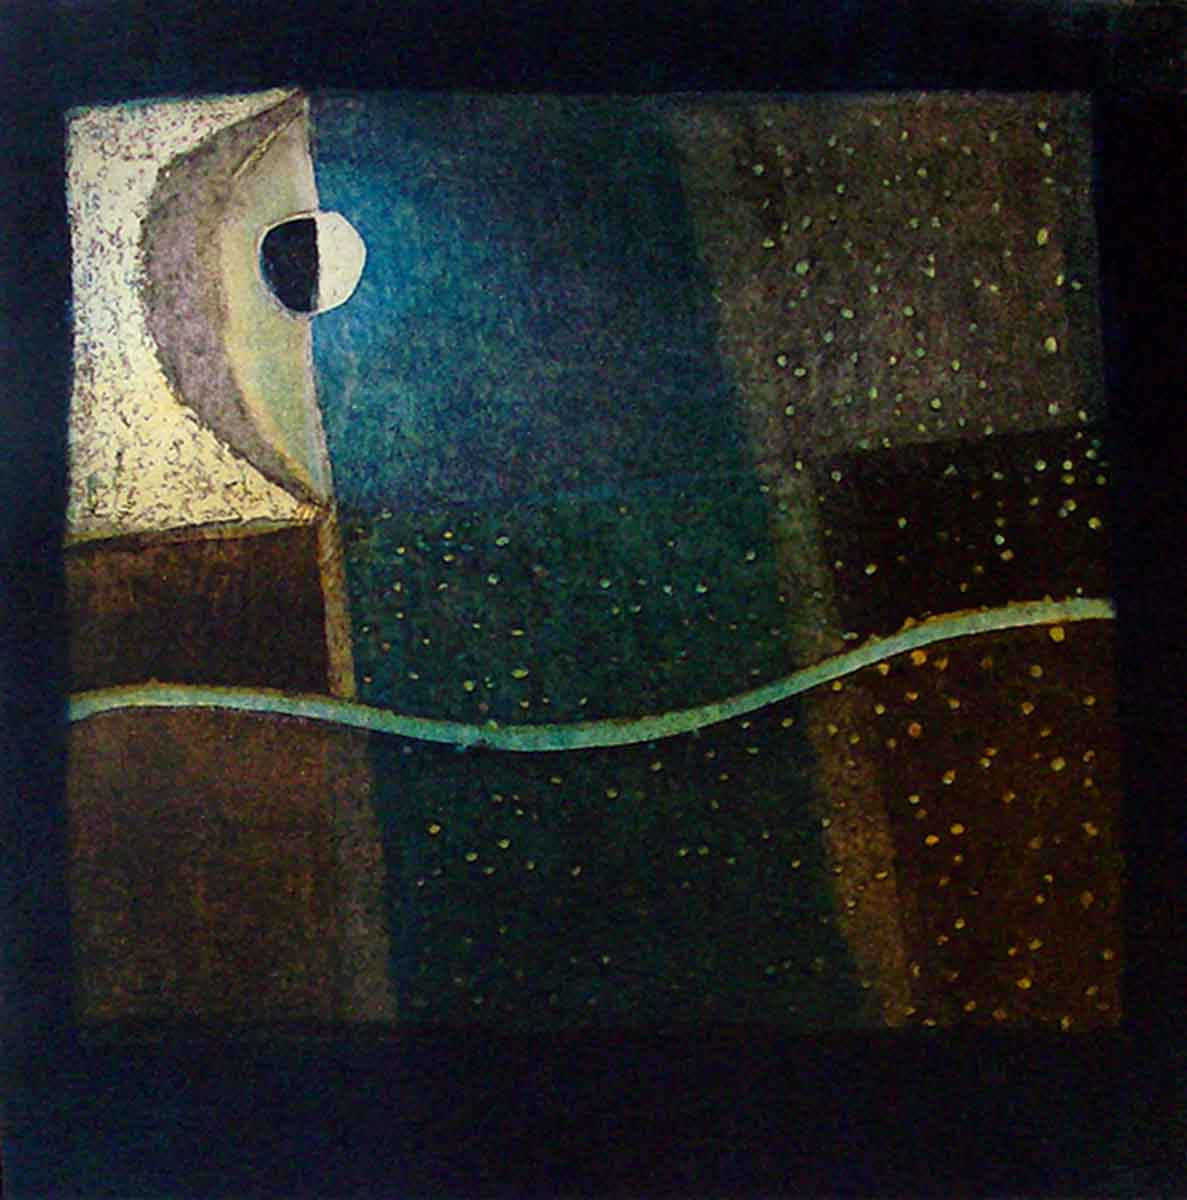 Equinox, 30x30, Aquatint on Paper